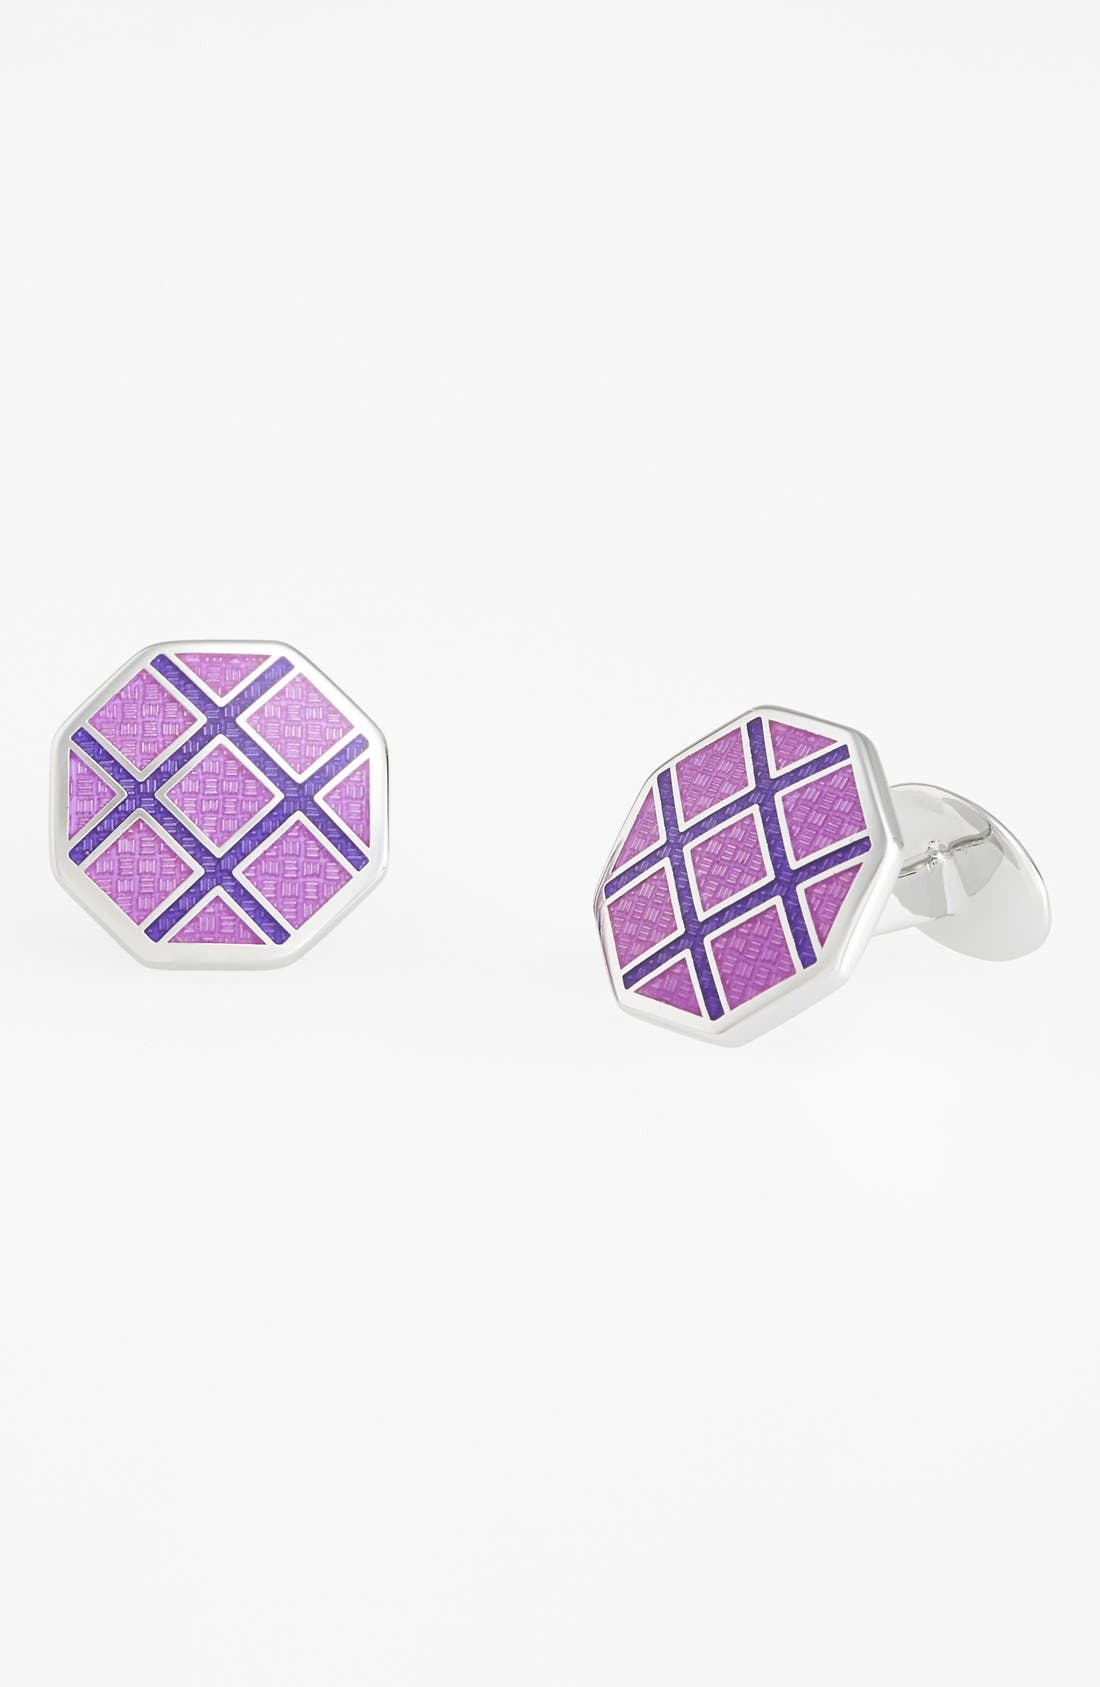 Octagon Cuff Links,                         Main,                         color, Silver/ Light Purple/ Violet